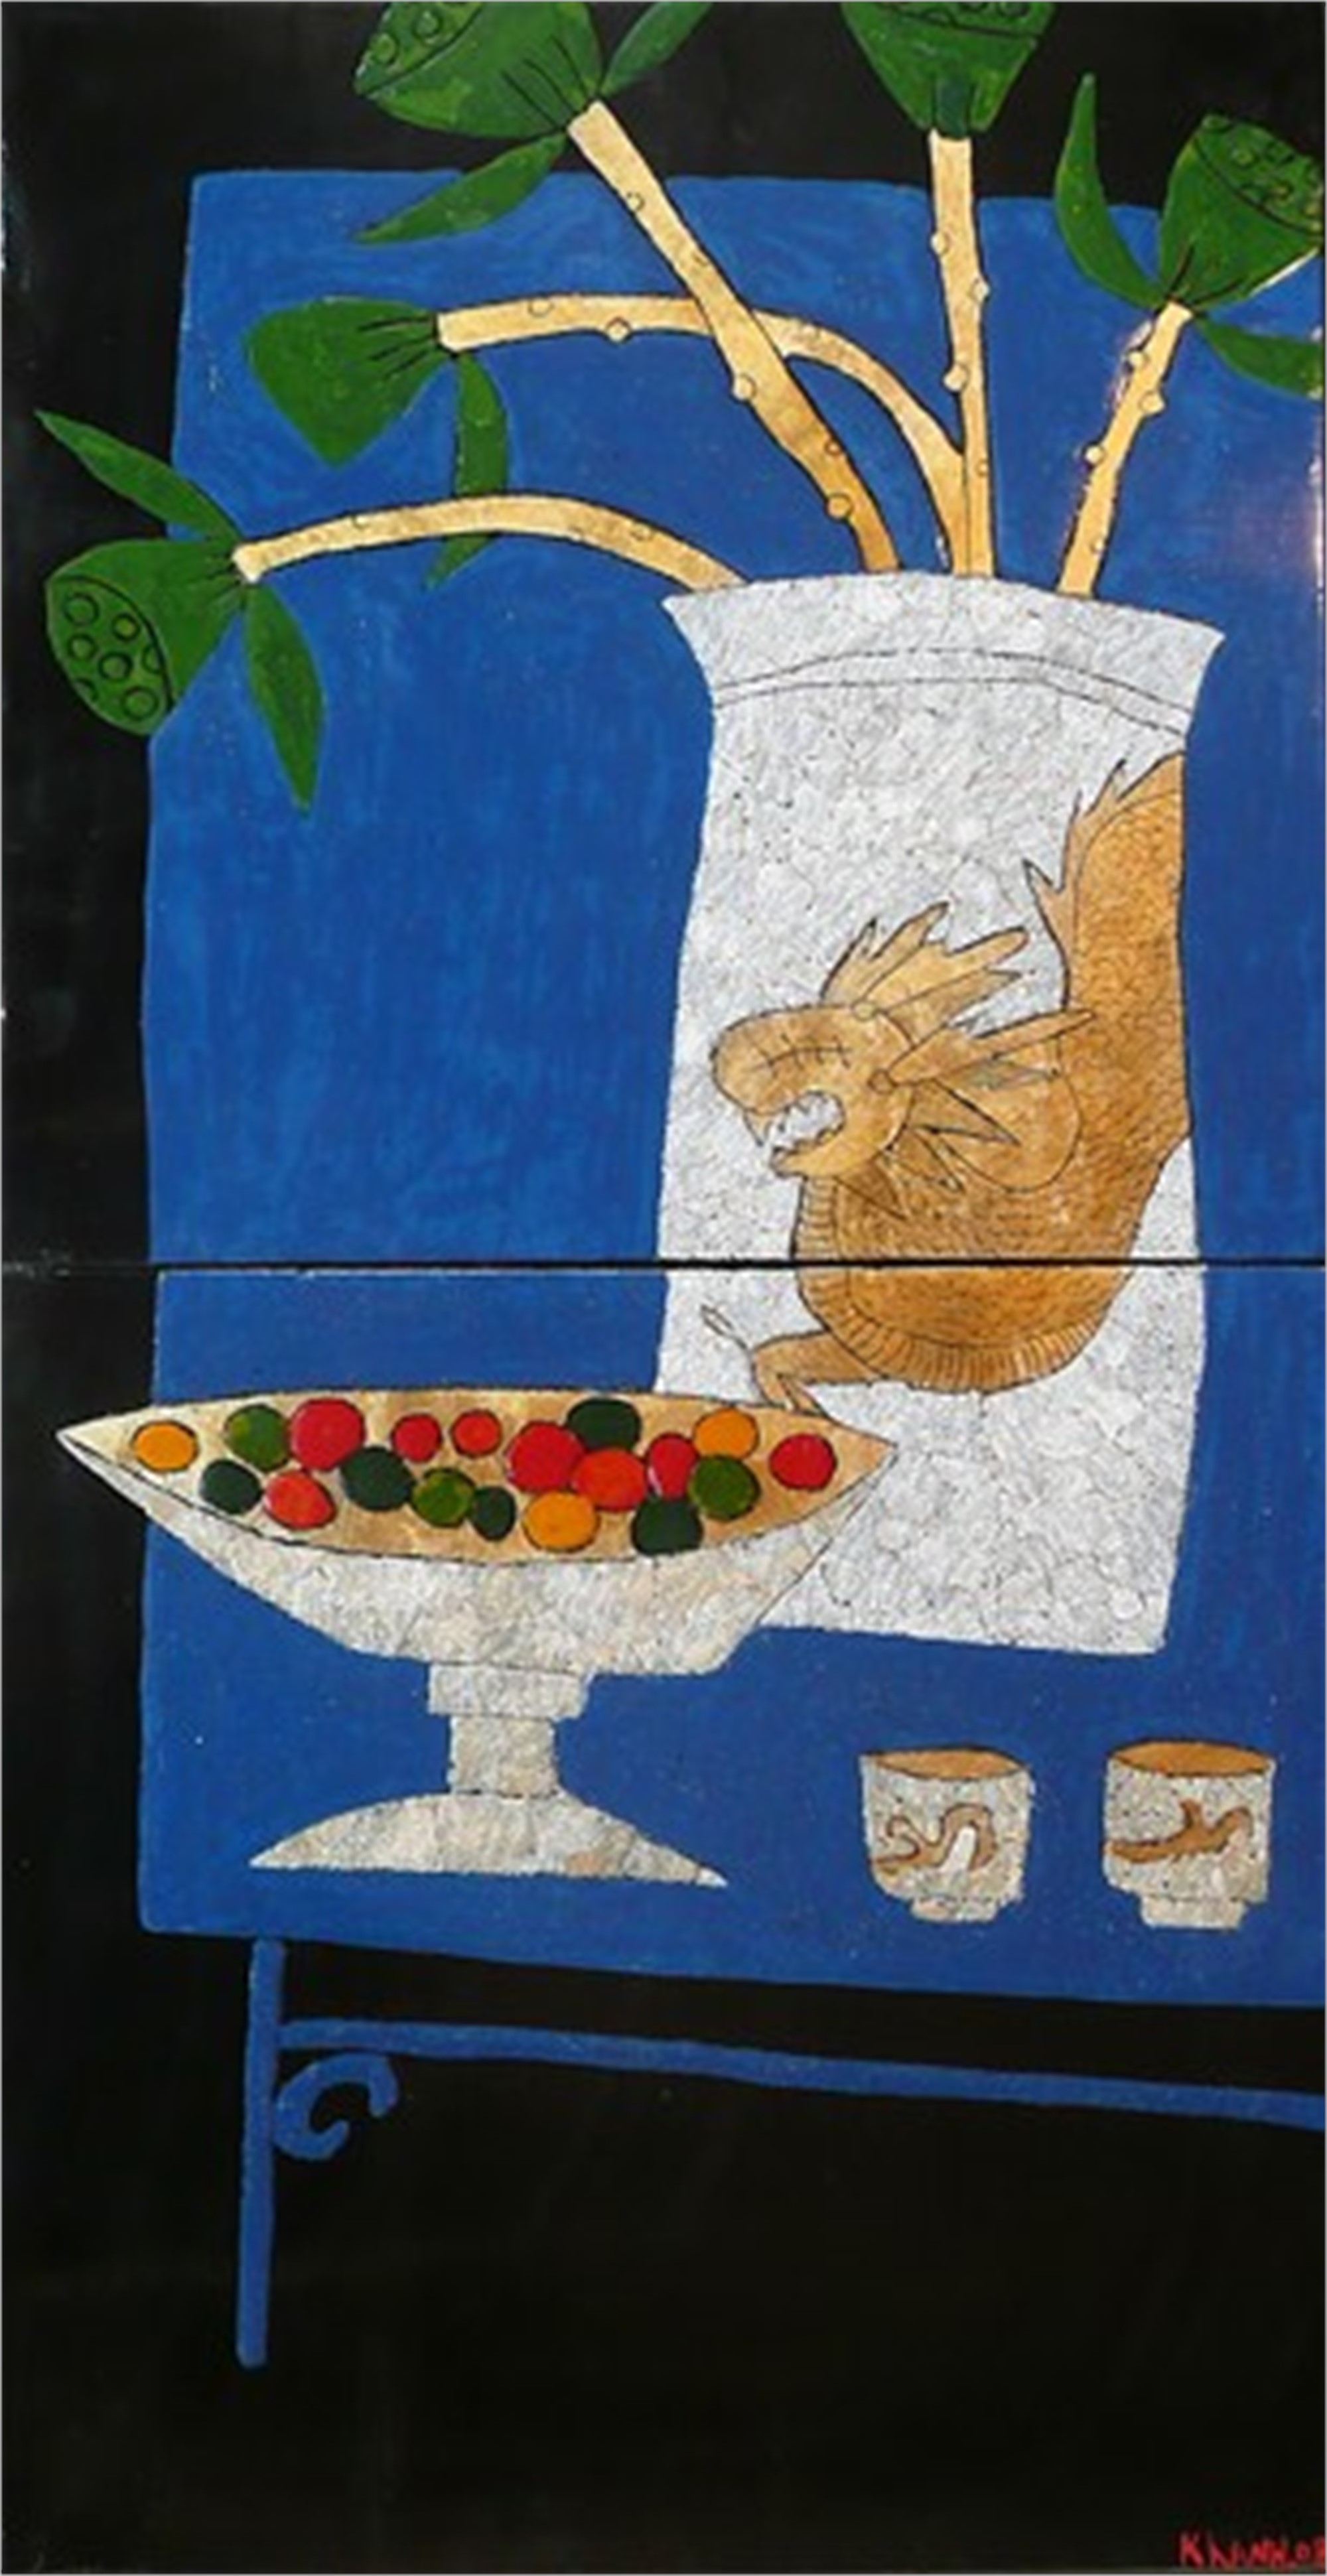 Still Life with Blue Table by Bui Cong Khanh